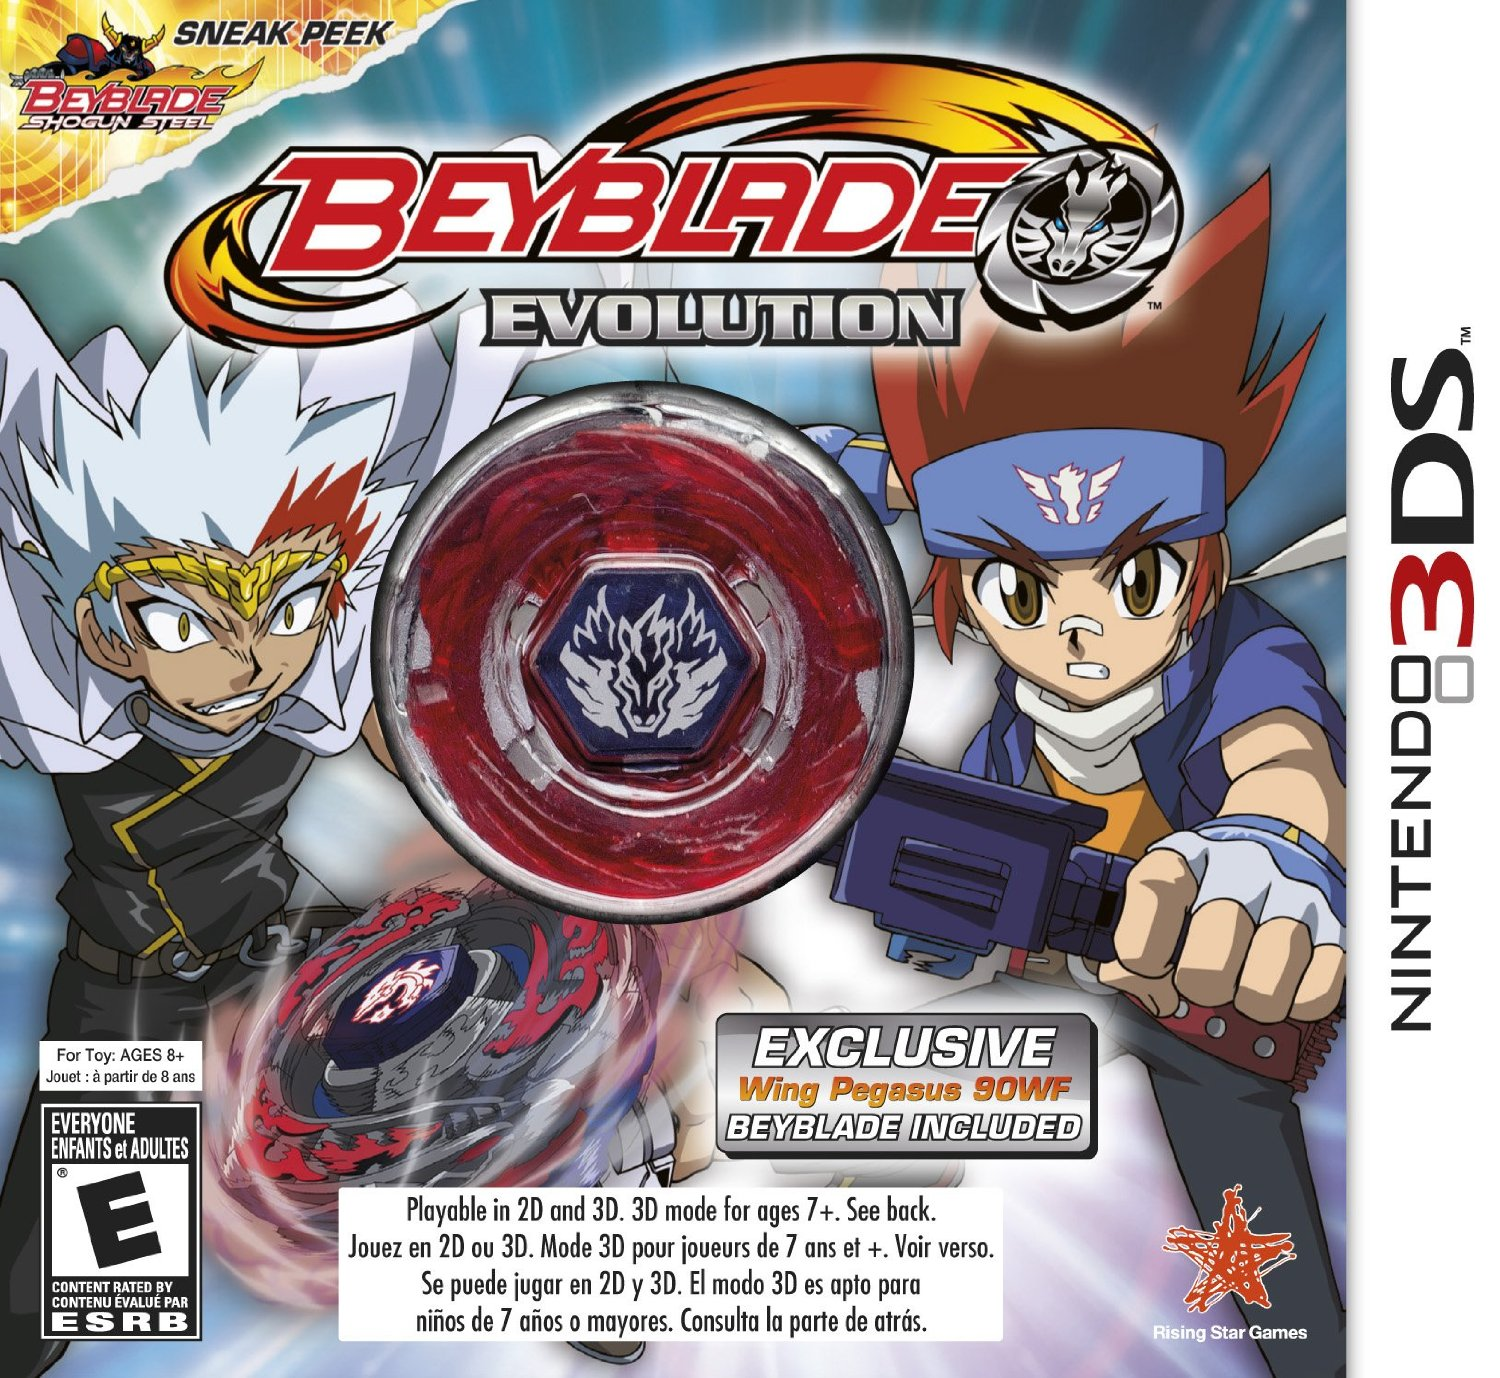 BeybladeEvolutionCollectorsEditionCover.jpg